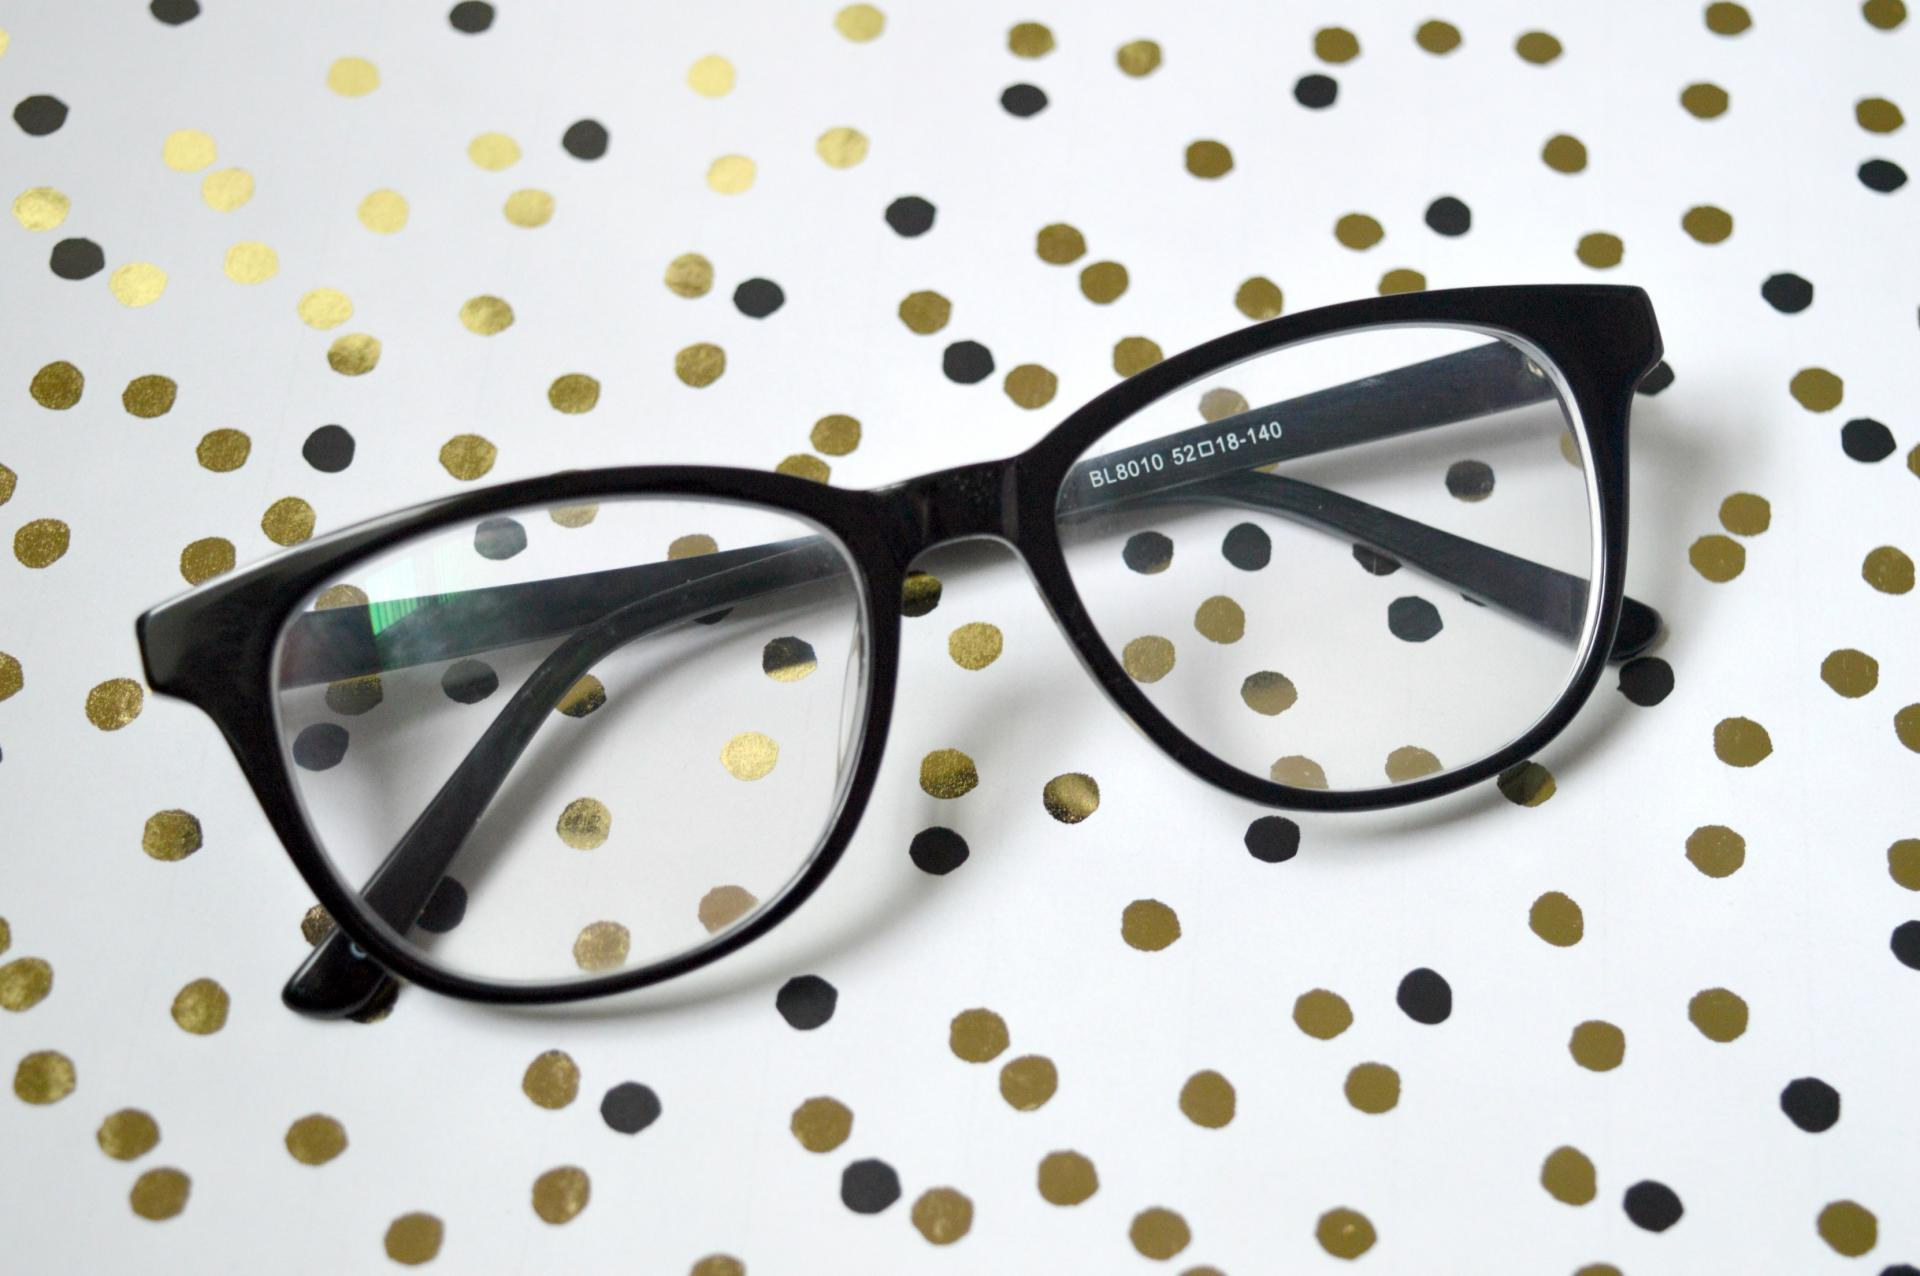 Infinity BL8010 From SelectSpecs